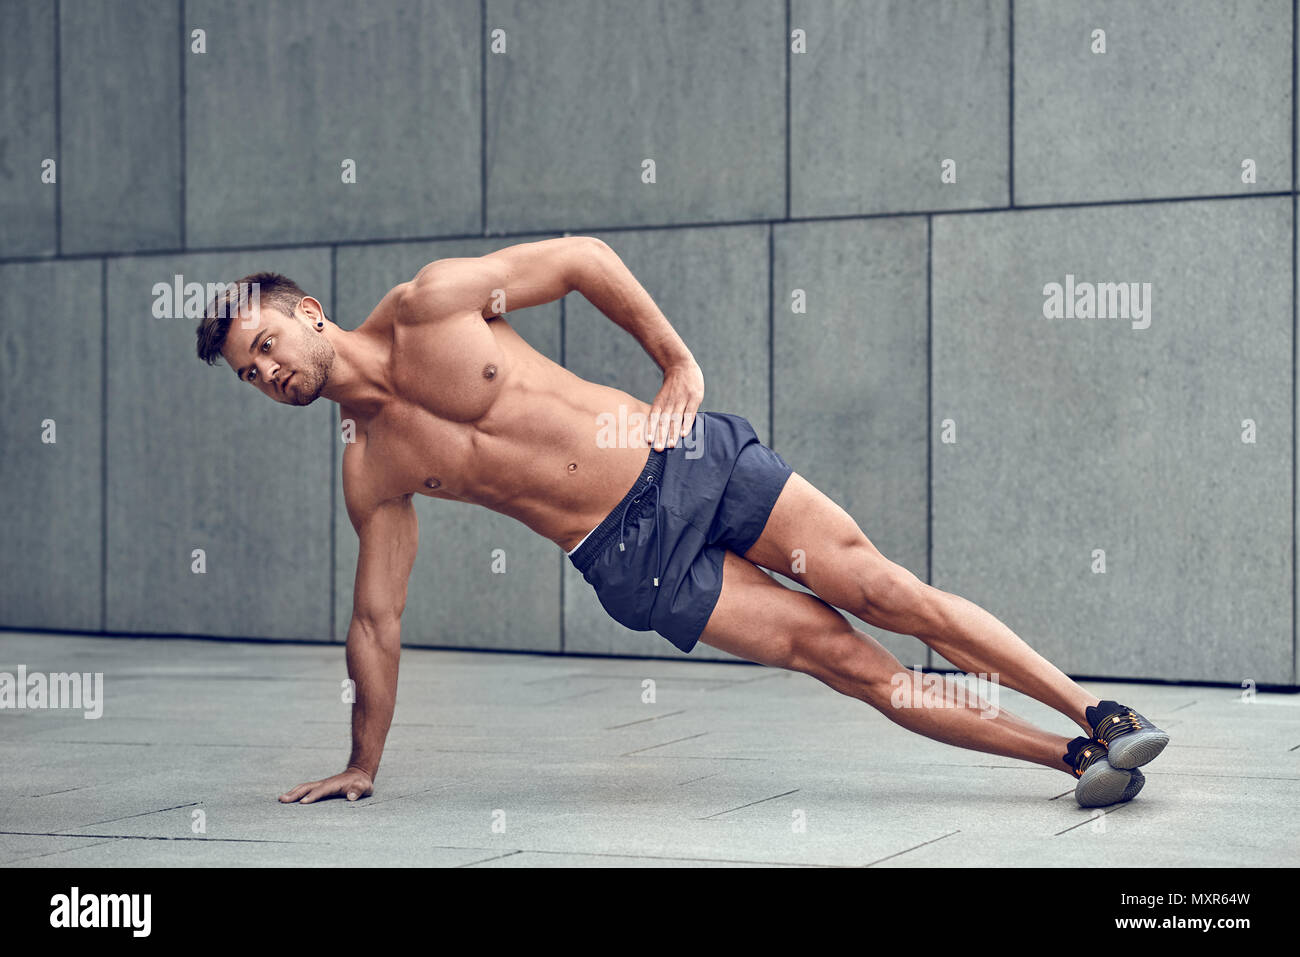 Fit healthy muscular young man with a bare chest doing side planks in an urban environment - Stock Image